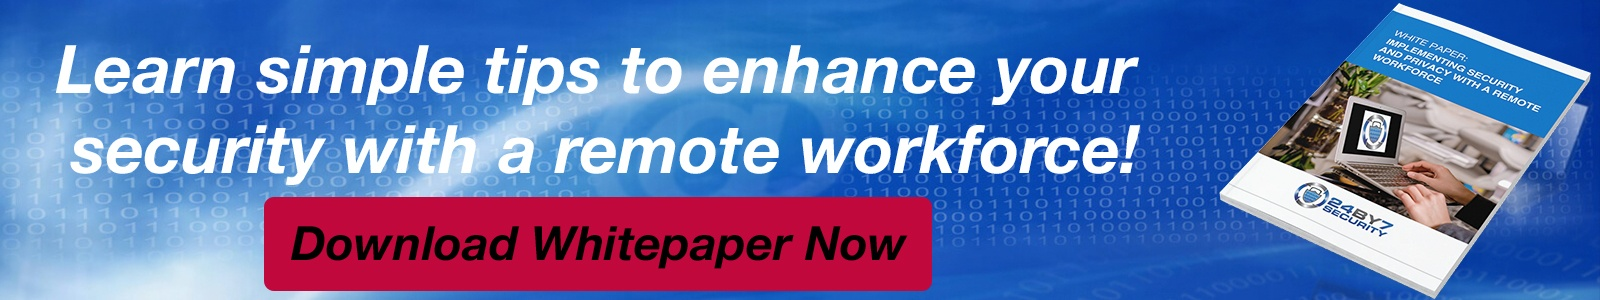 Download whitepaper on Implementing Security and Privacy with remote workforce from 24By7Security